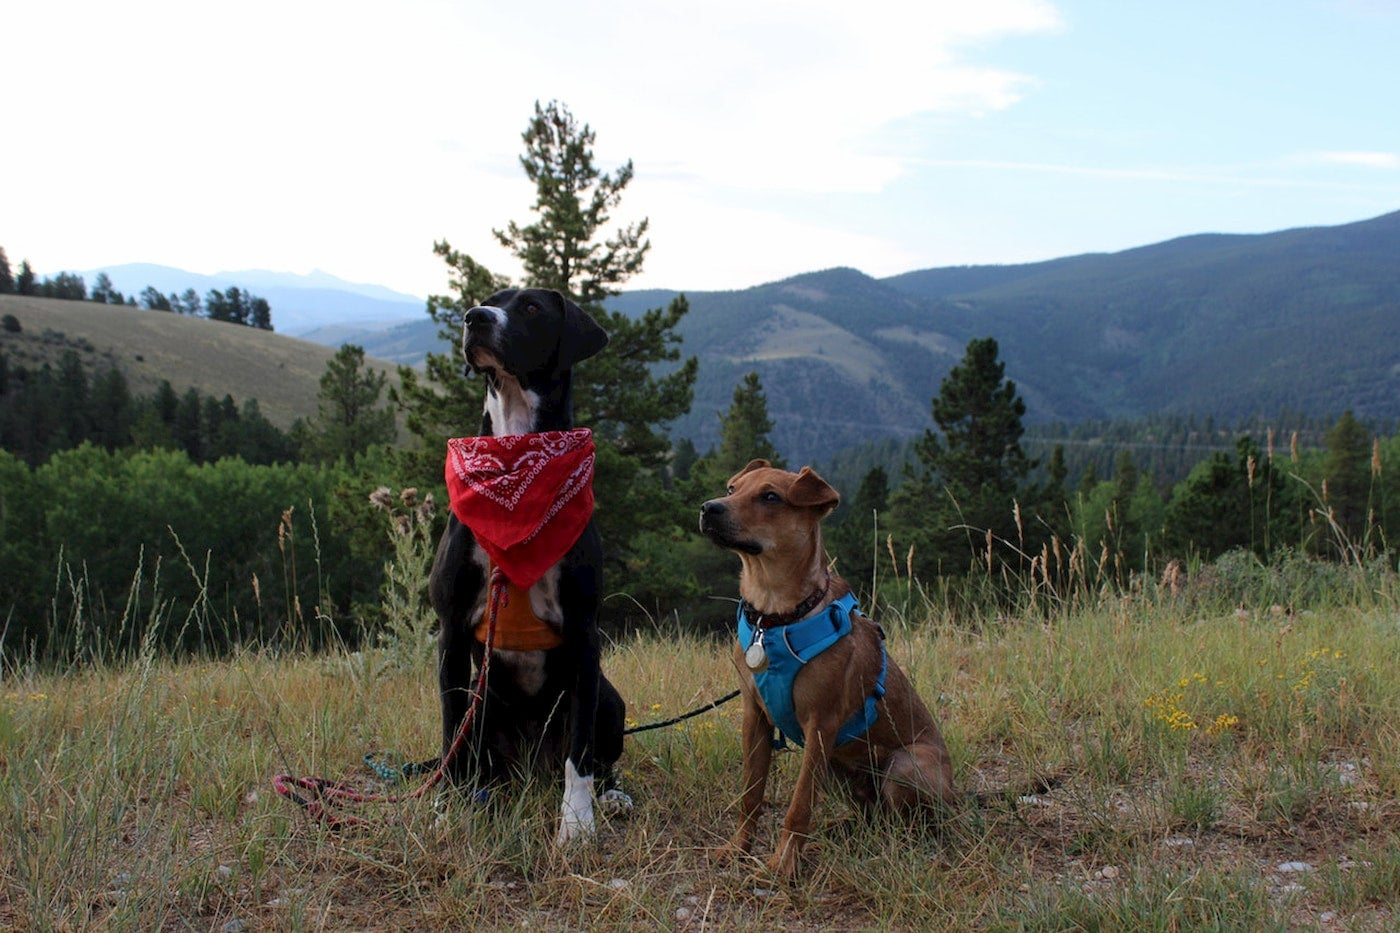 Two dogs sitting in a field mid hike with harnesses.